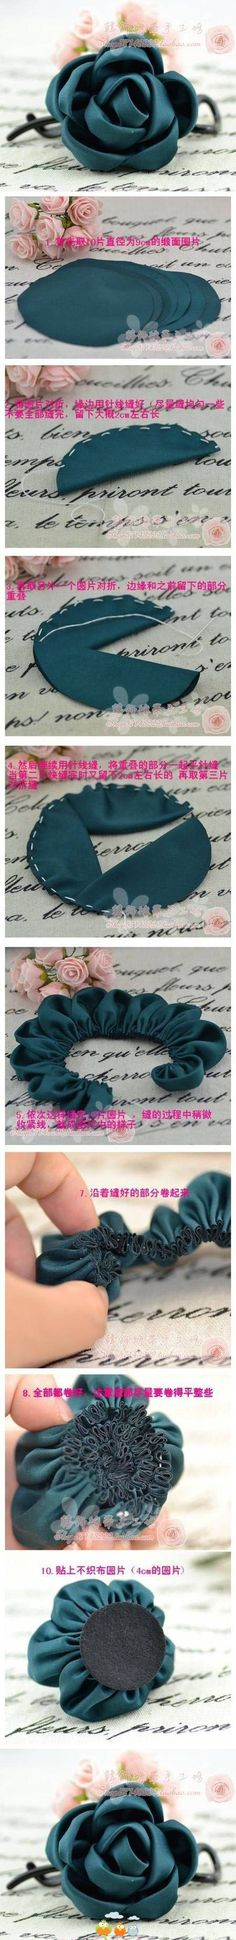 tutorial fabric flower ♥